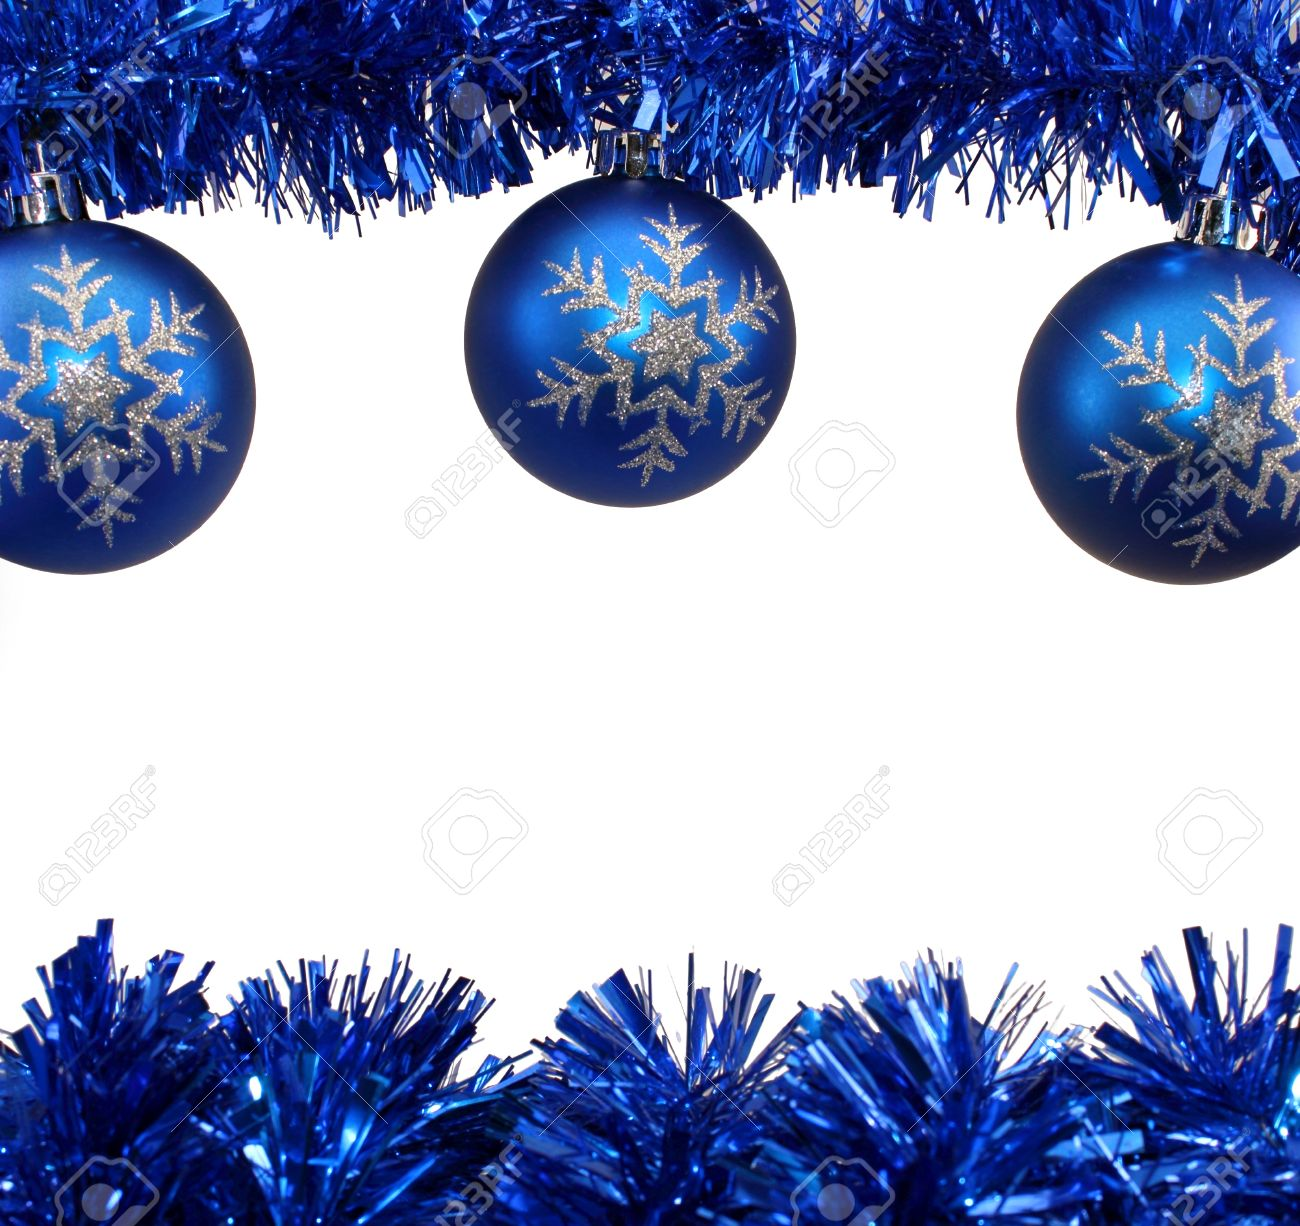 Snowflake Blue Christmas Decorations and Blue Tinsel on White Background.  Stock Photo - 11727460